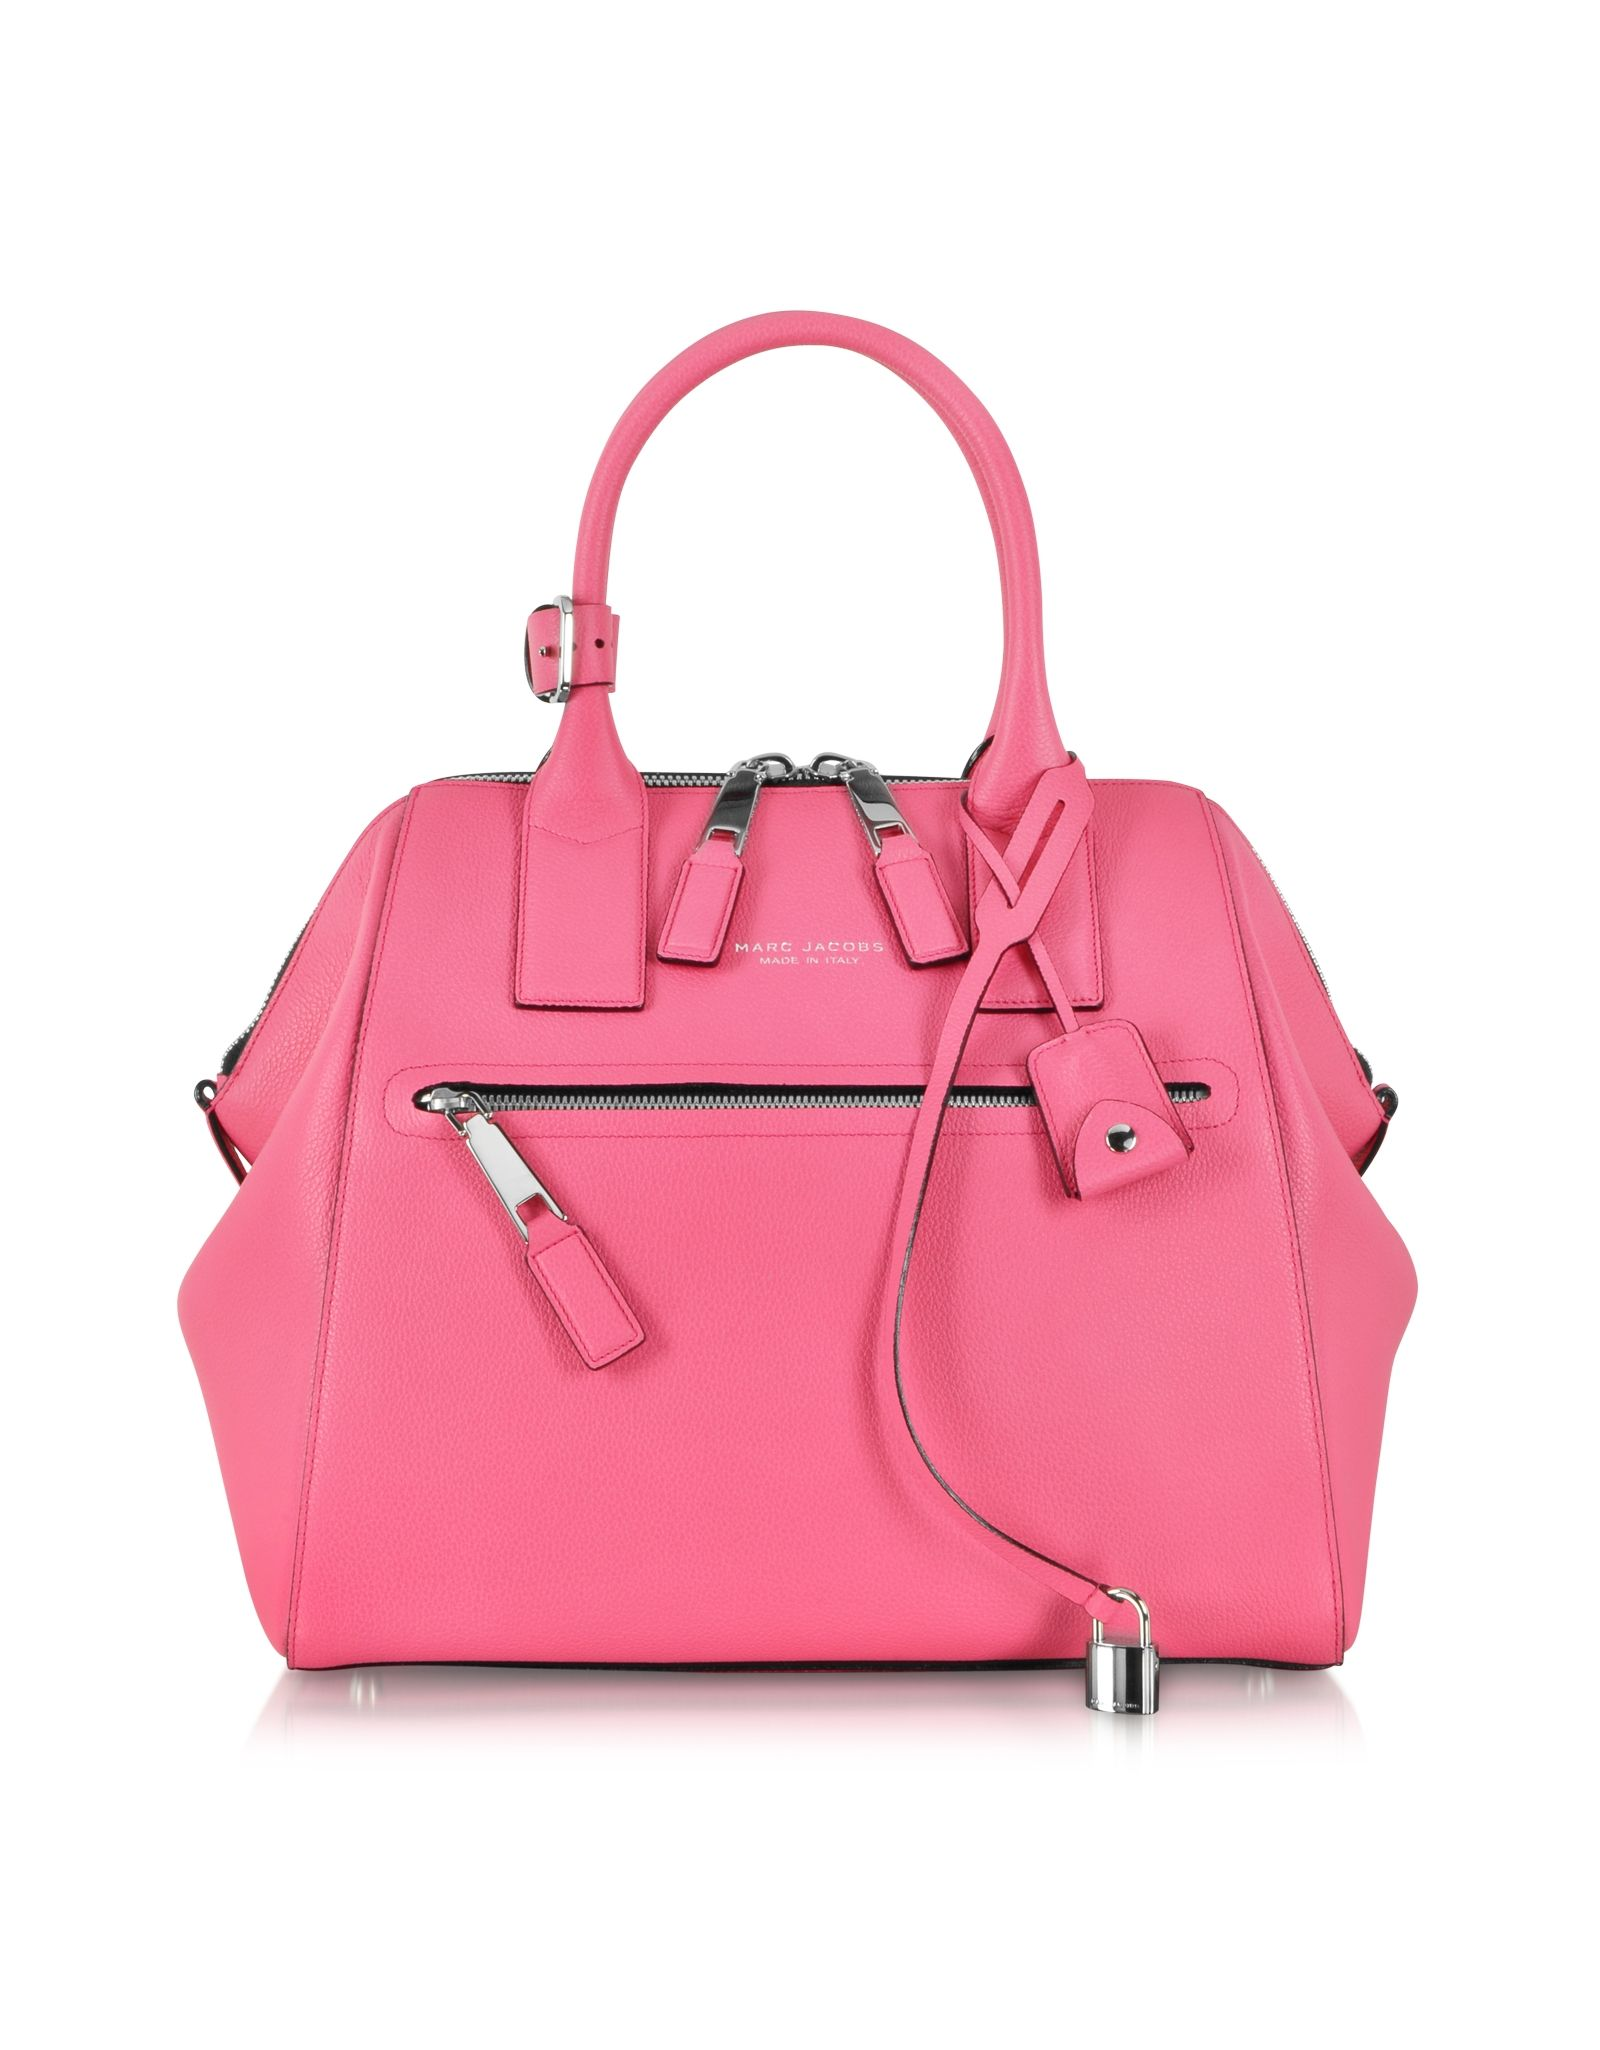 66267cc94f Marc Jacobs Textured Large Incognito Peony Handbag at FORZIERI